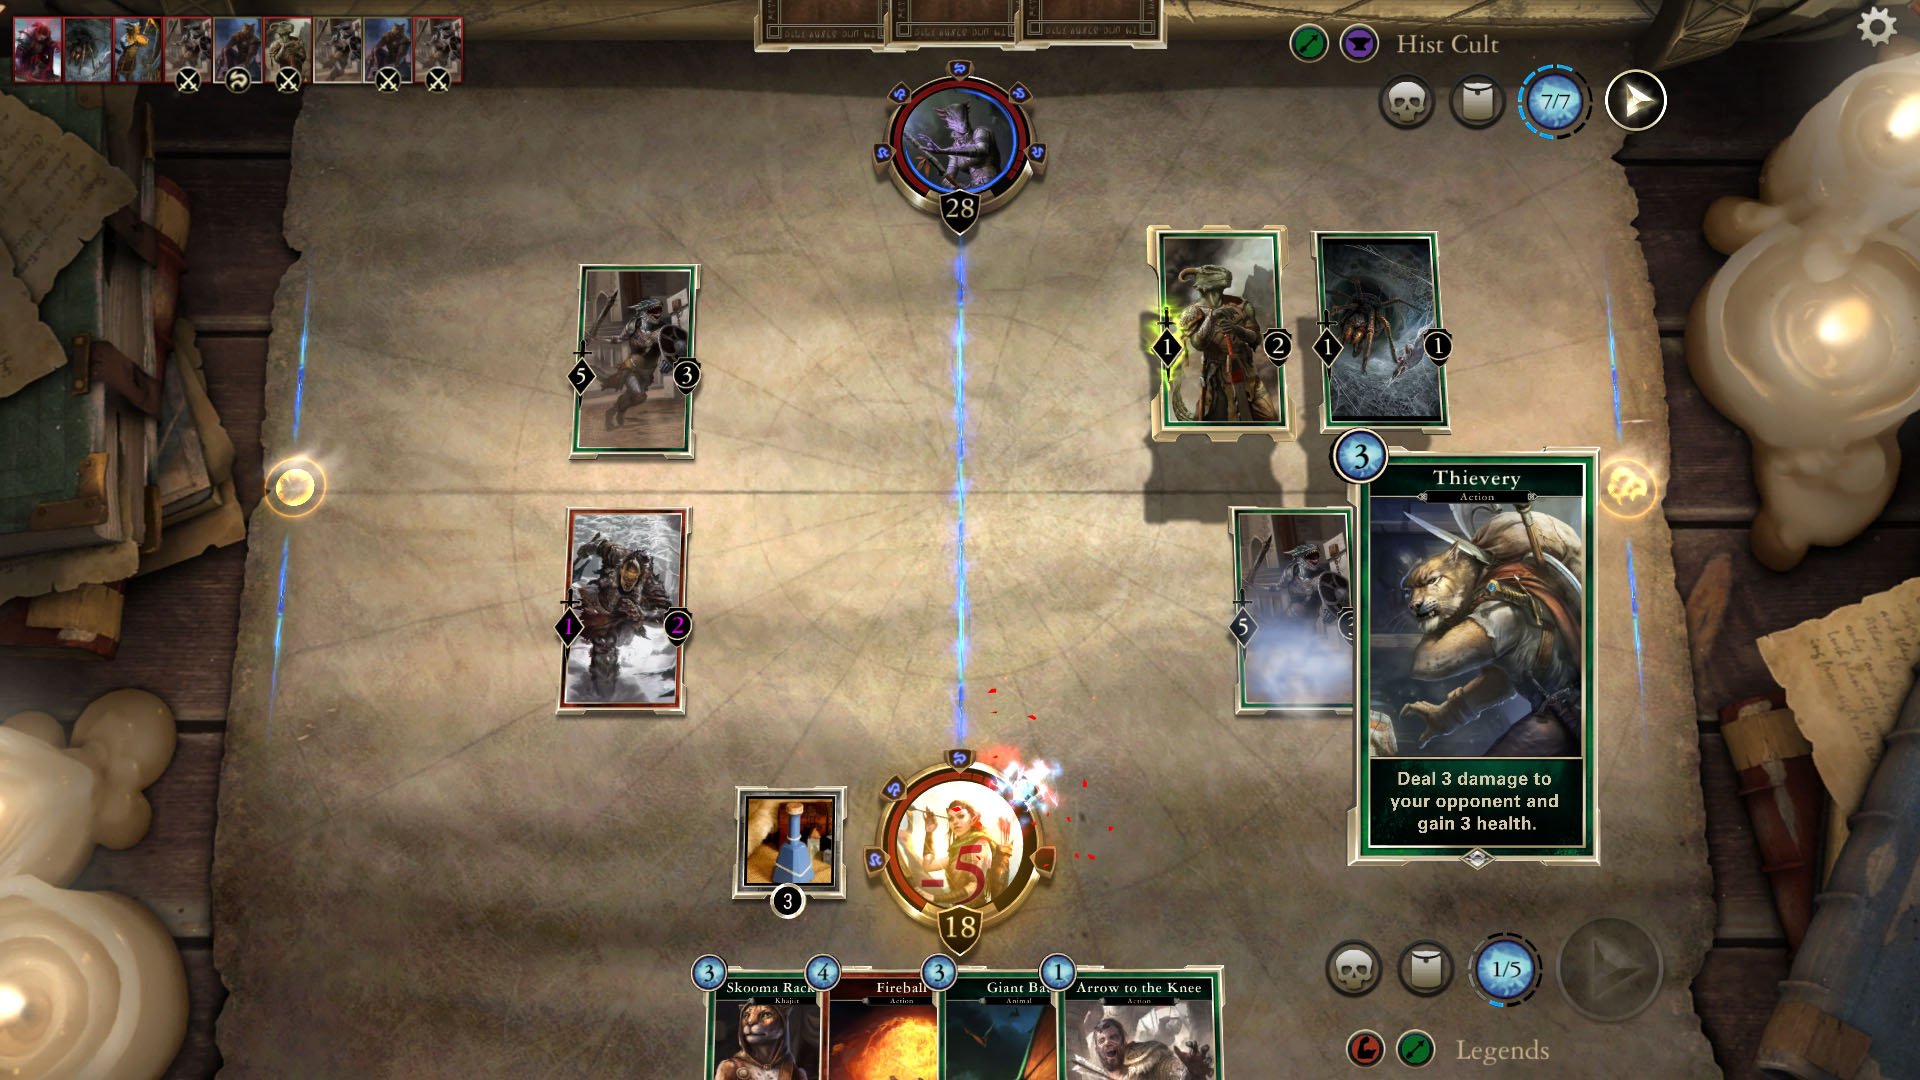 Karetní hra The Elder Scrolls: Legends